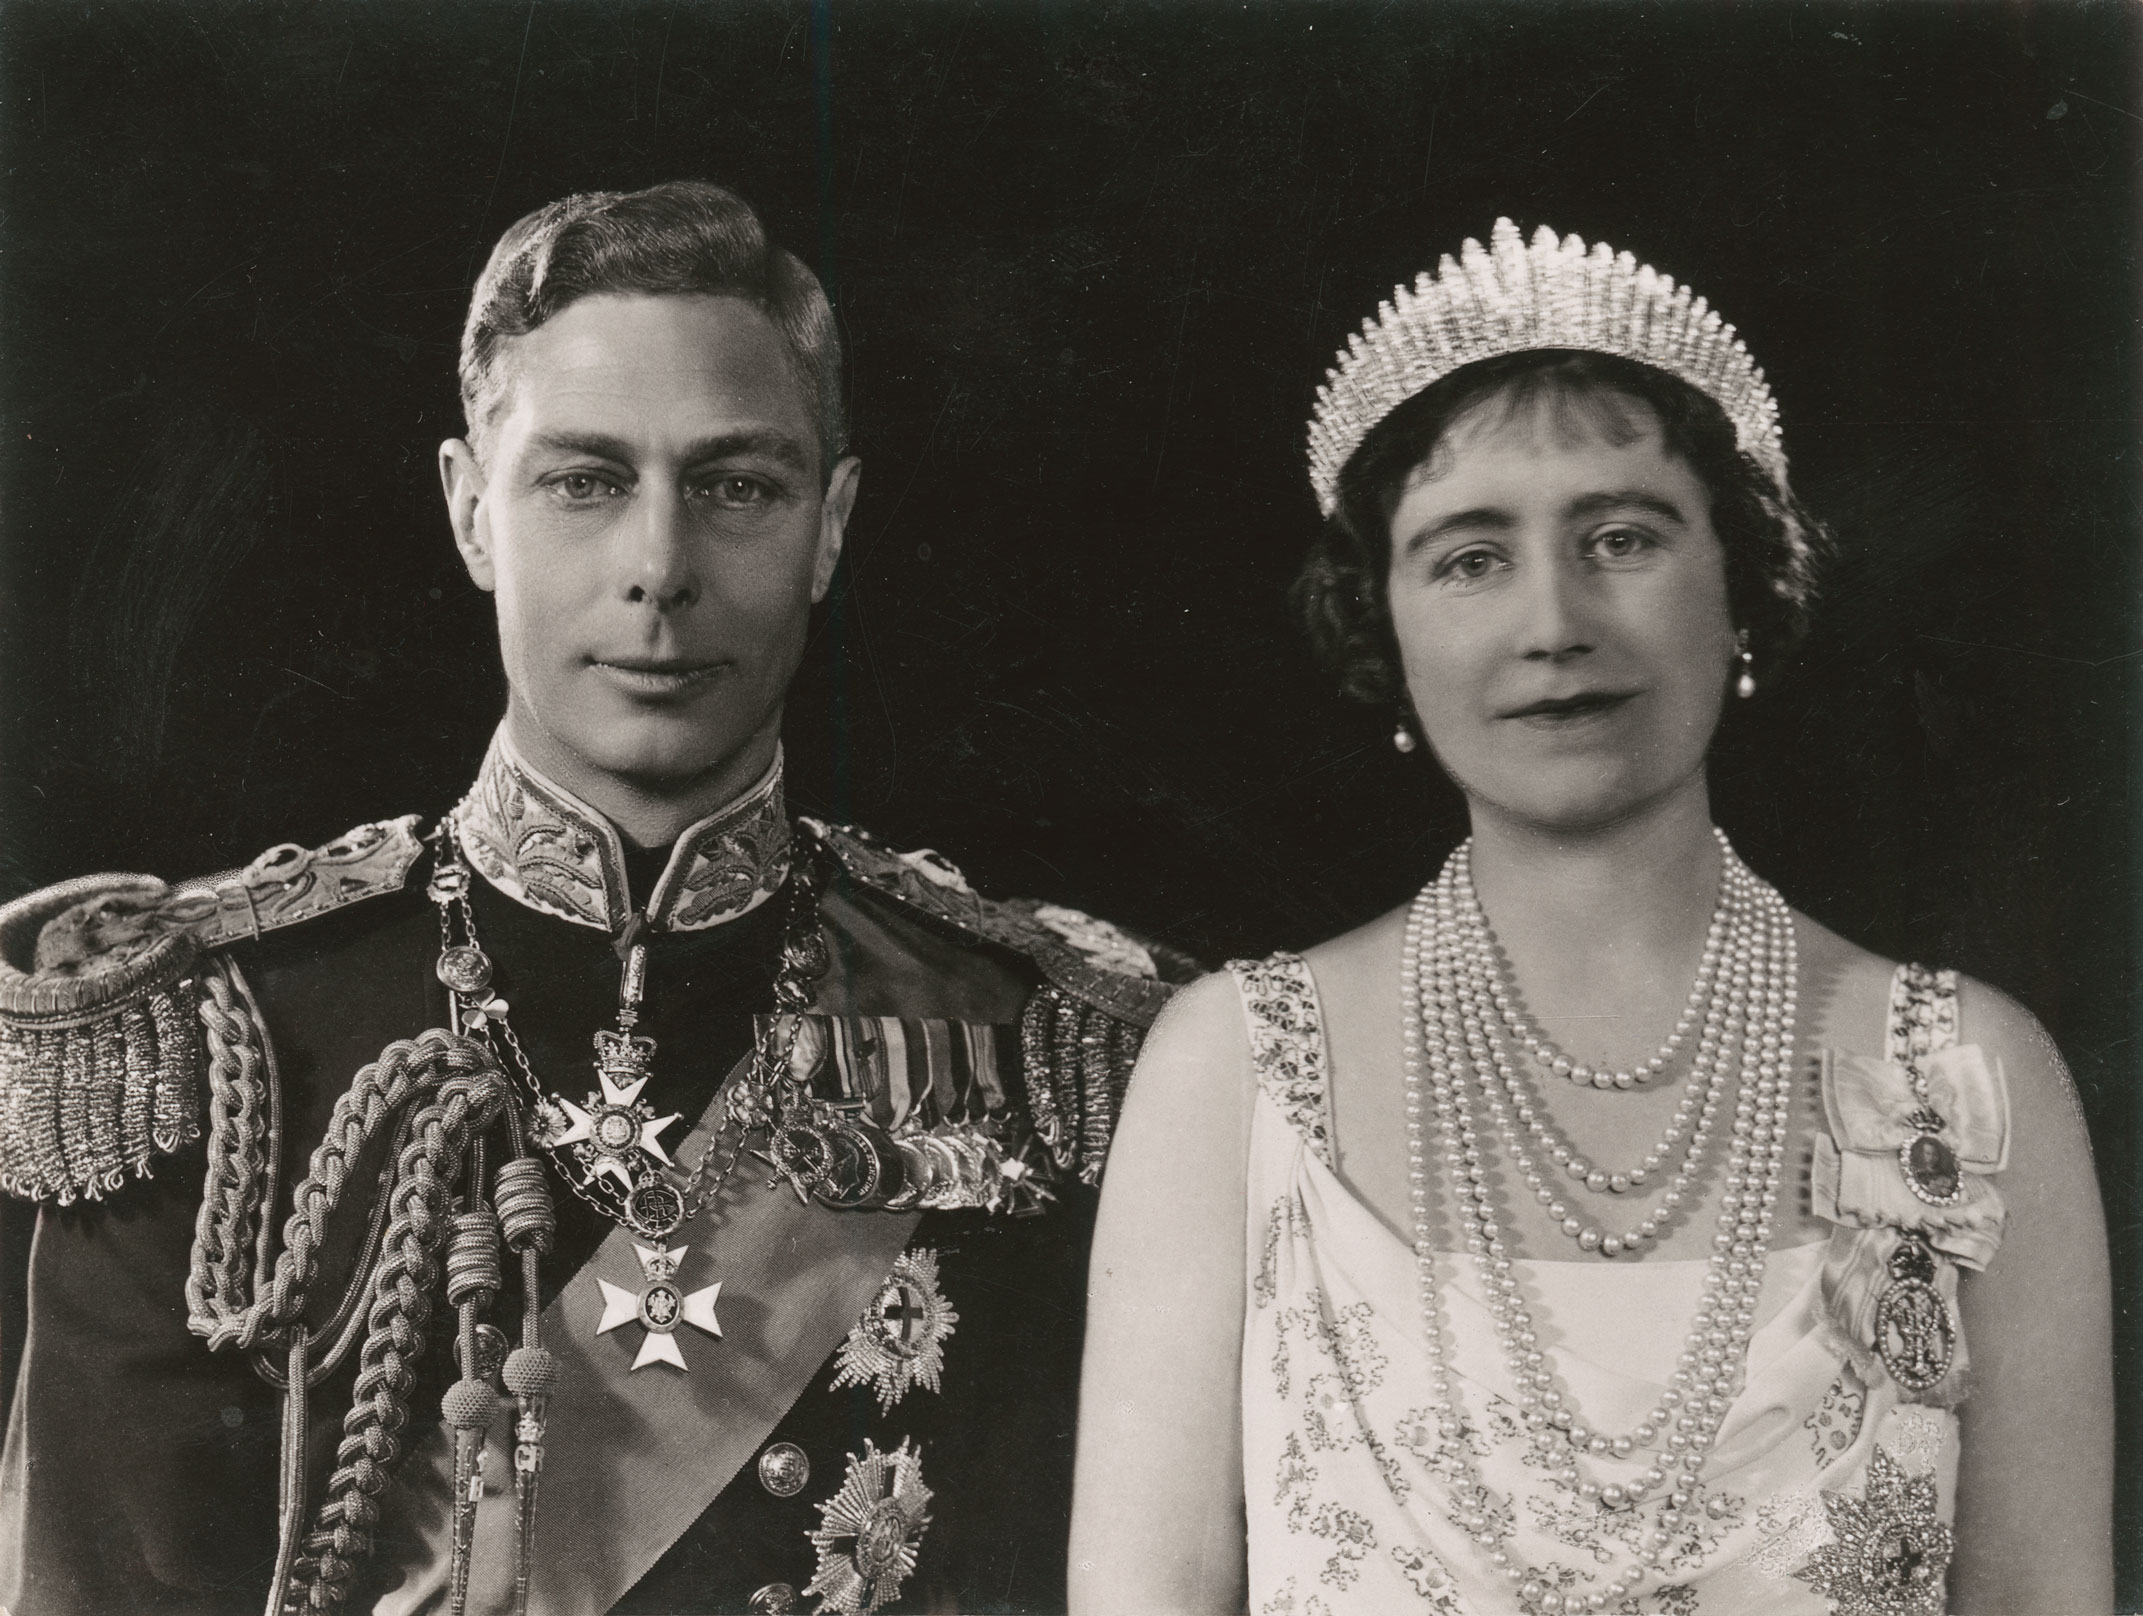 Black and white portrait of the couple side by side. The King wears medals and the Queen pearls and a tiara.